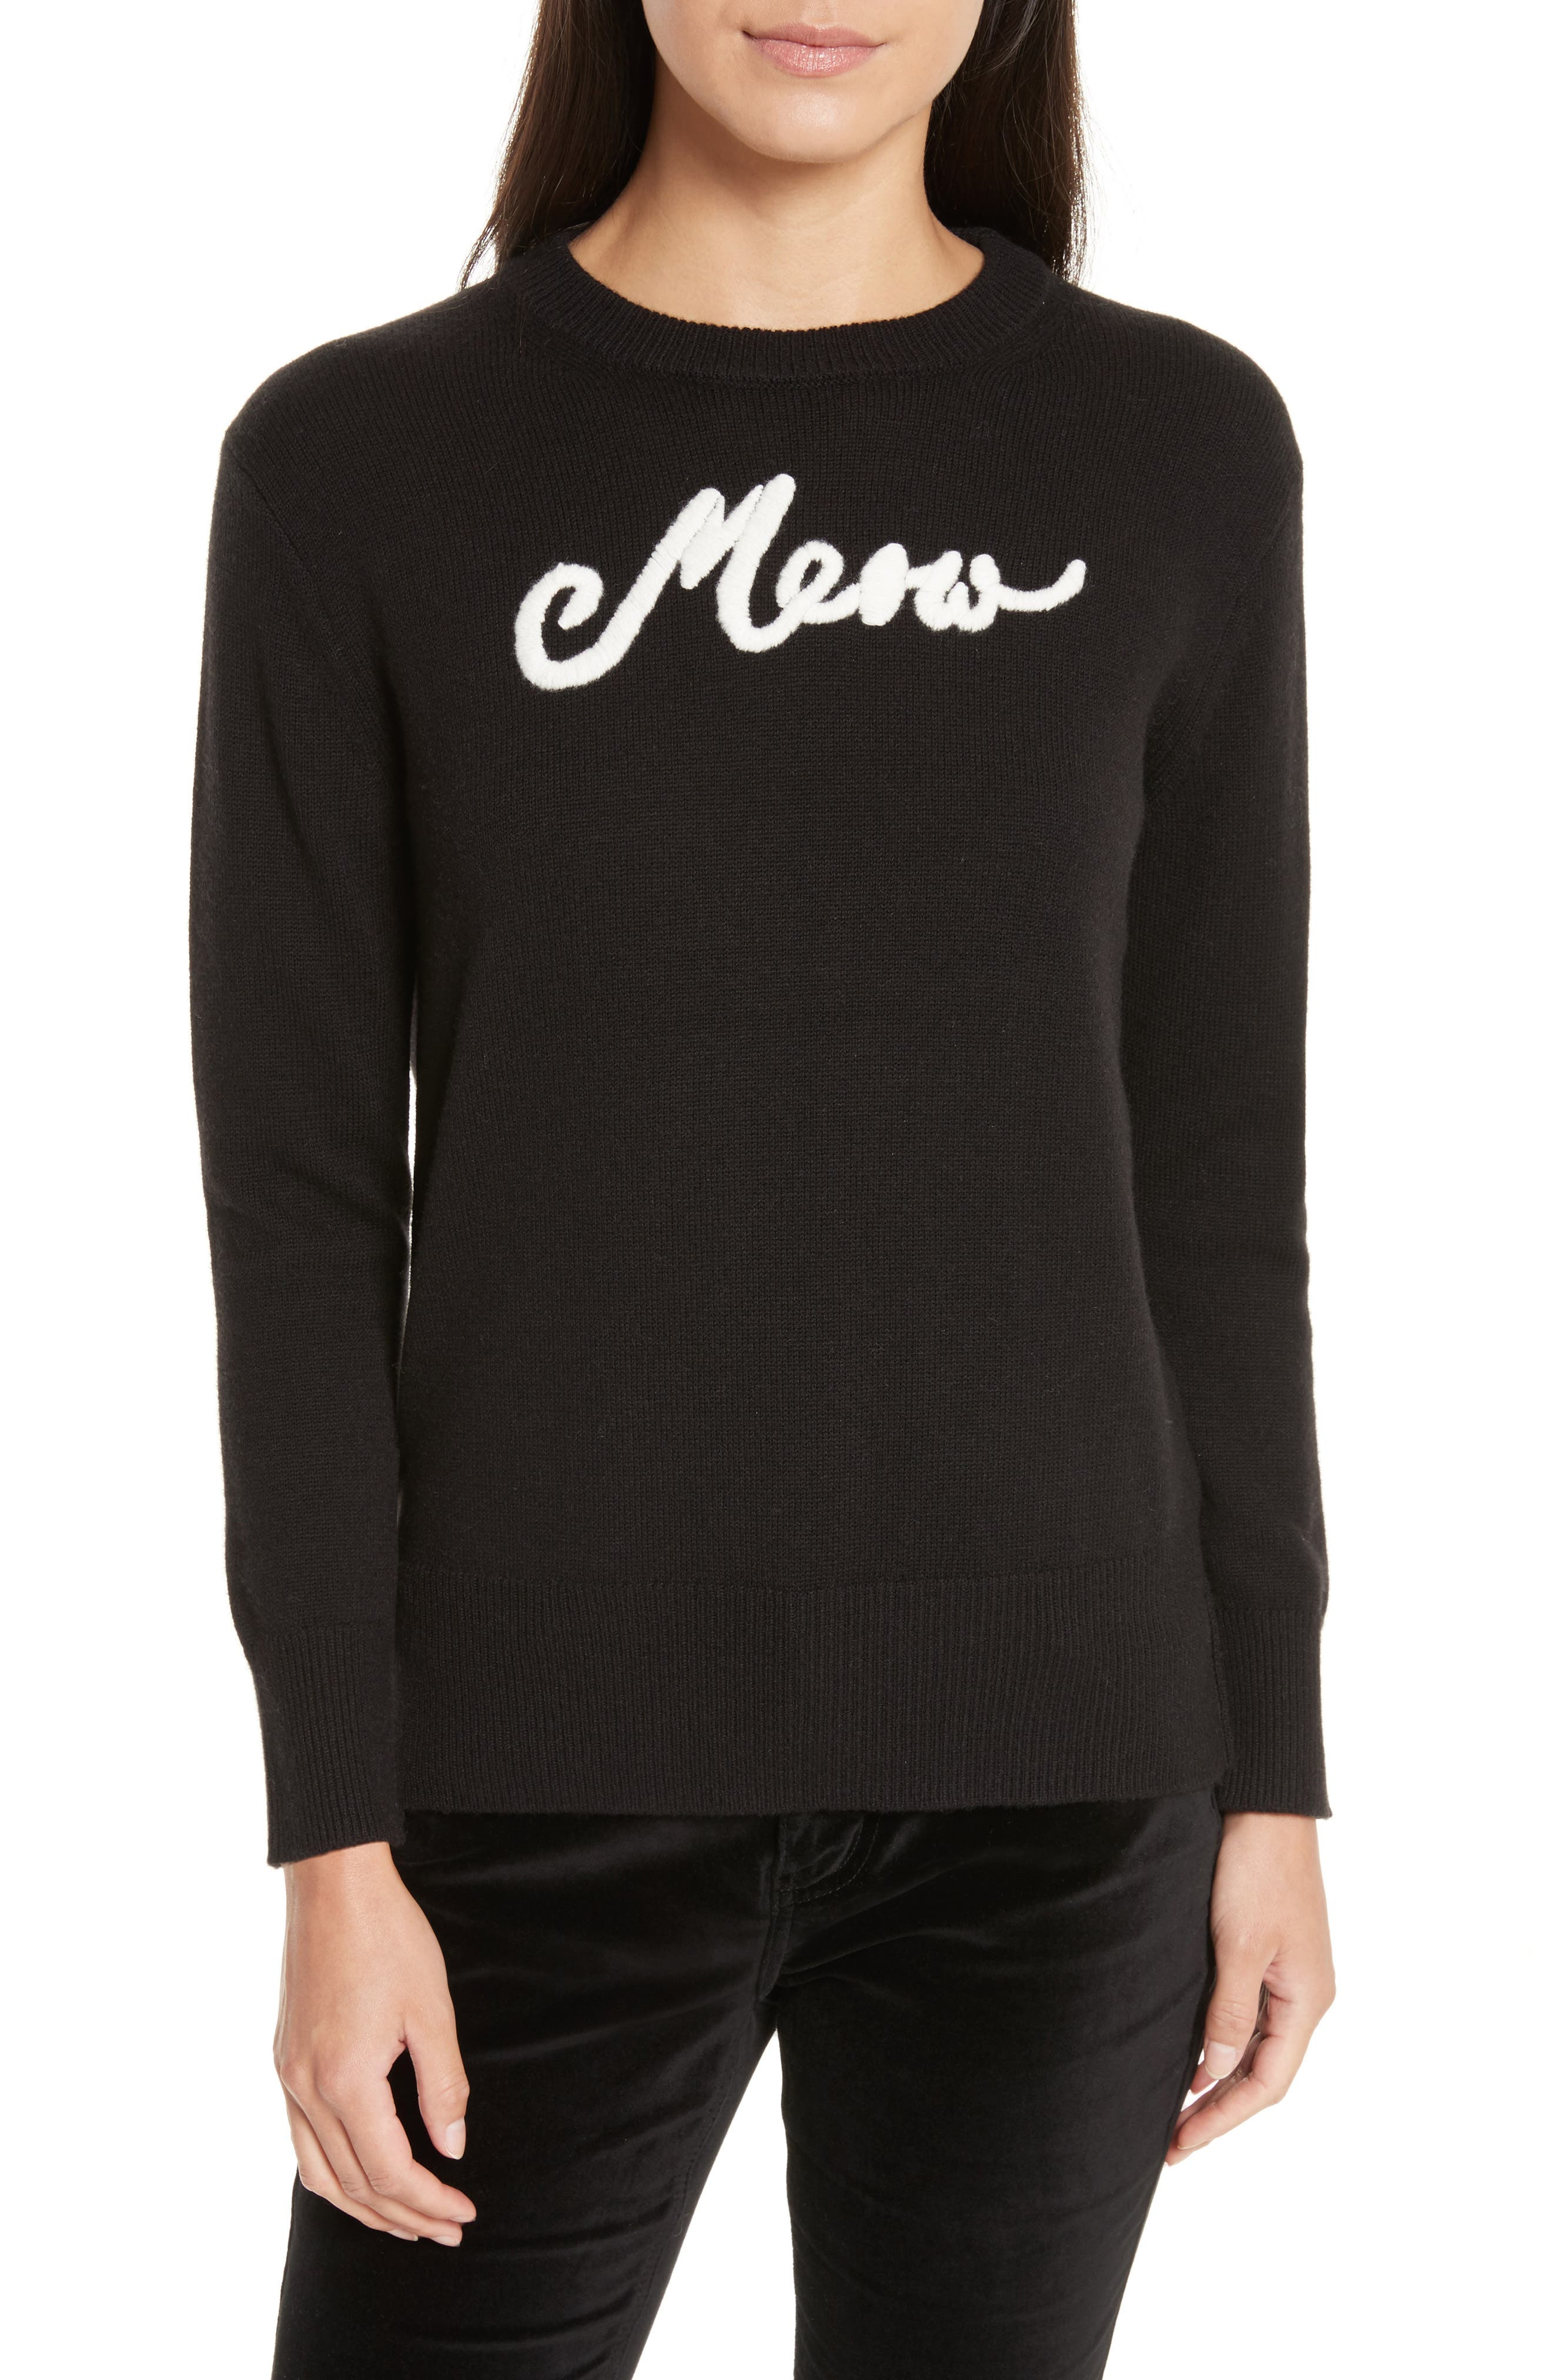 meow sweater,                             Main thumbnail 1, color,                             Black